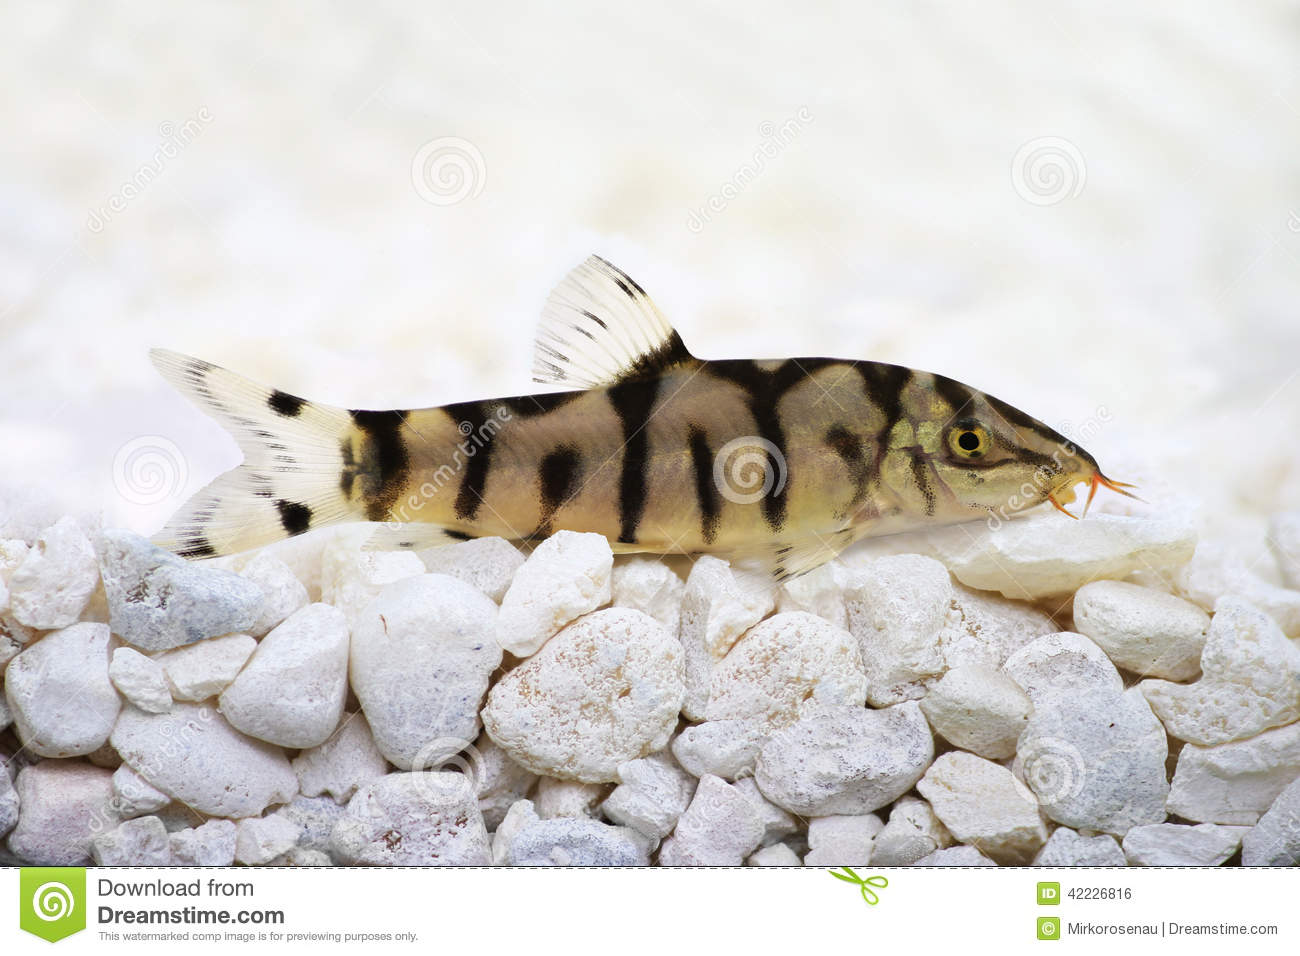 Freshwater aquarium fish in pakistan - Yoyo Loach Almora Loach Or Pakistani Loach Catfish Botia Almorhae